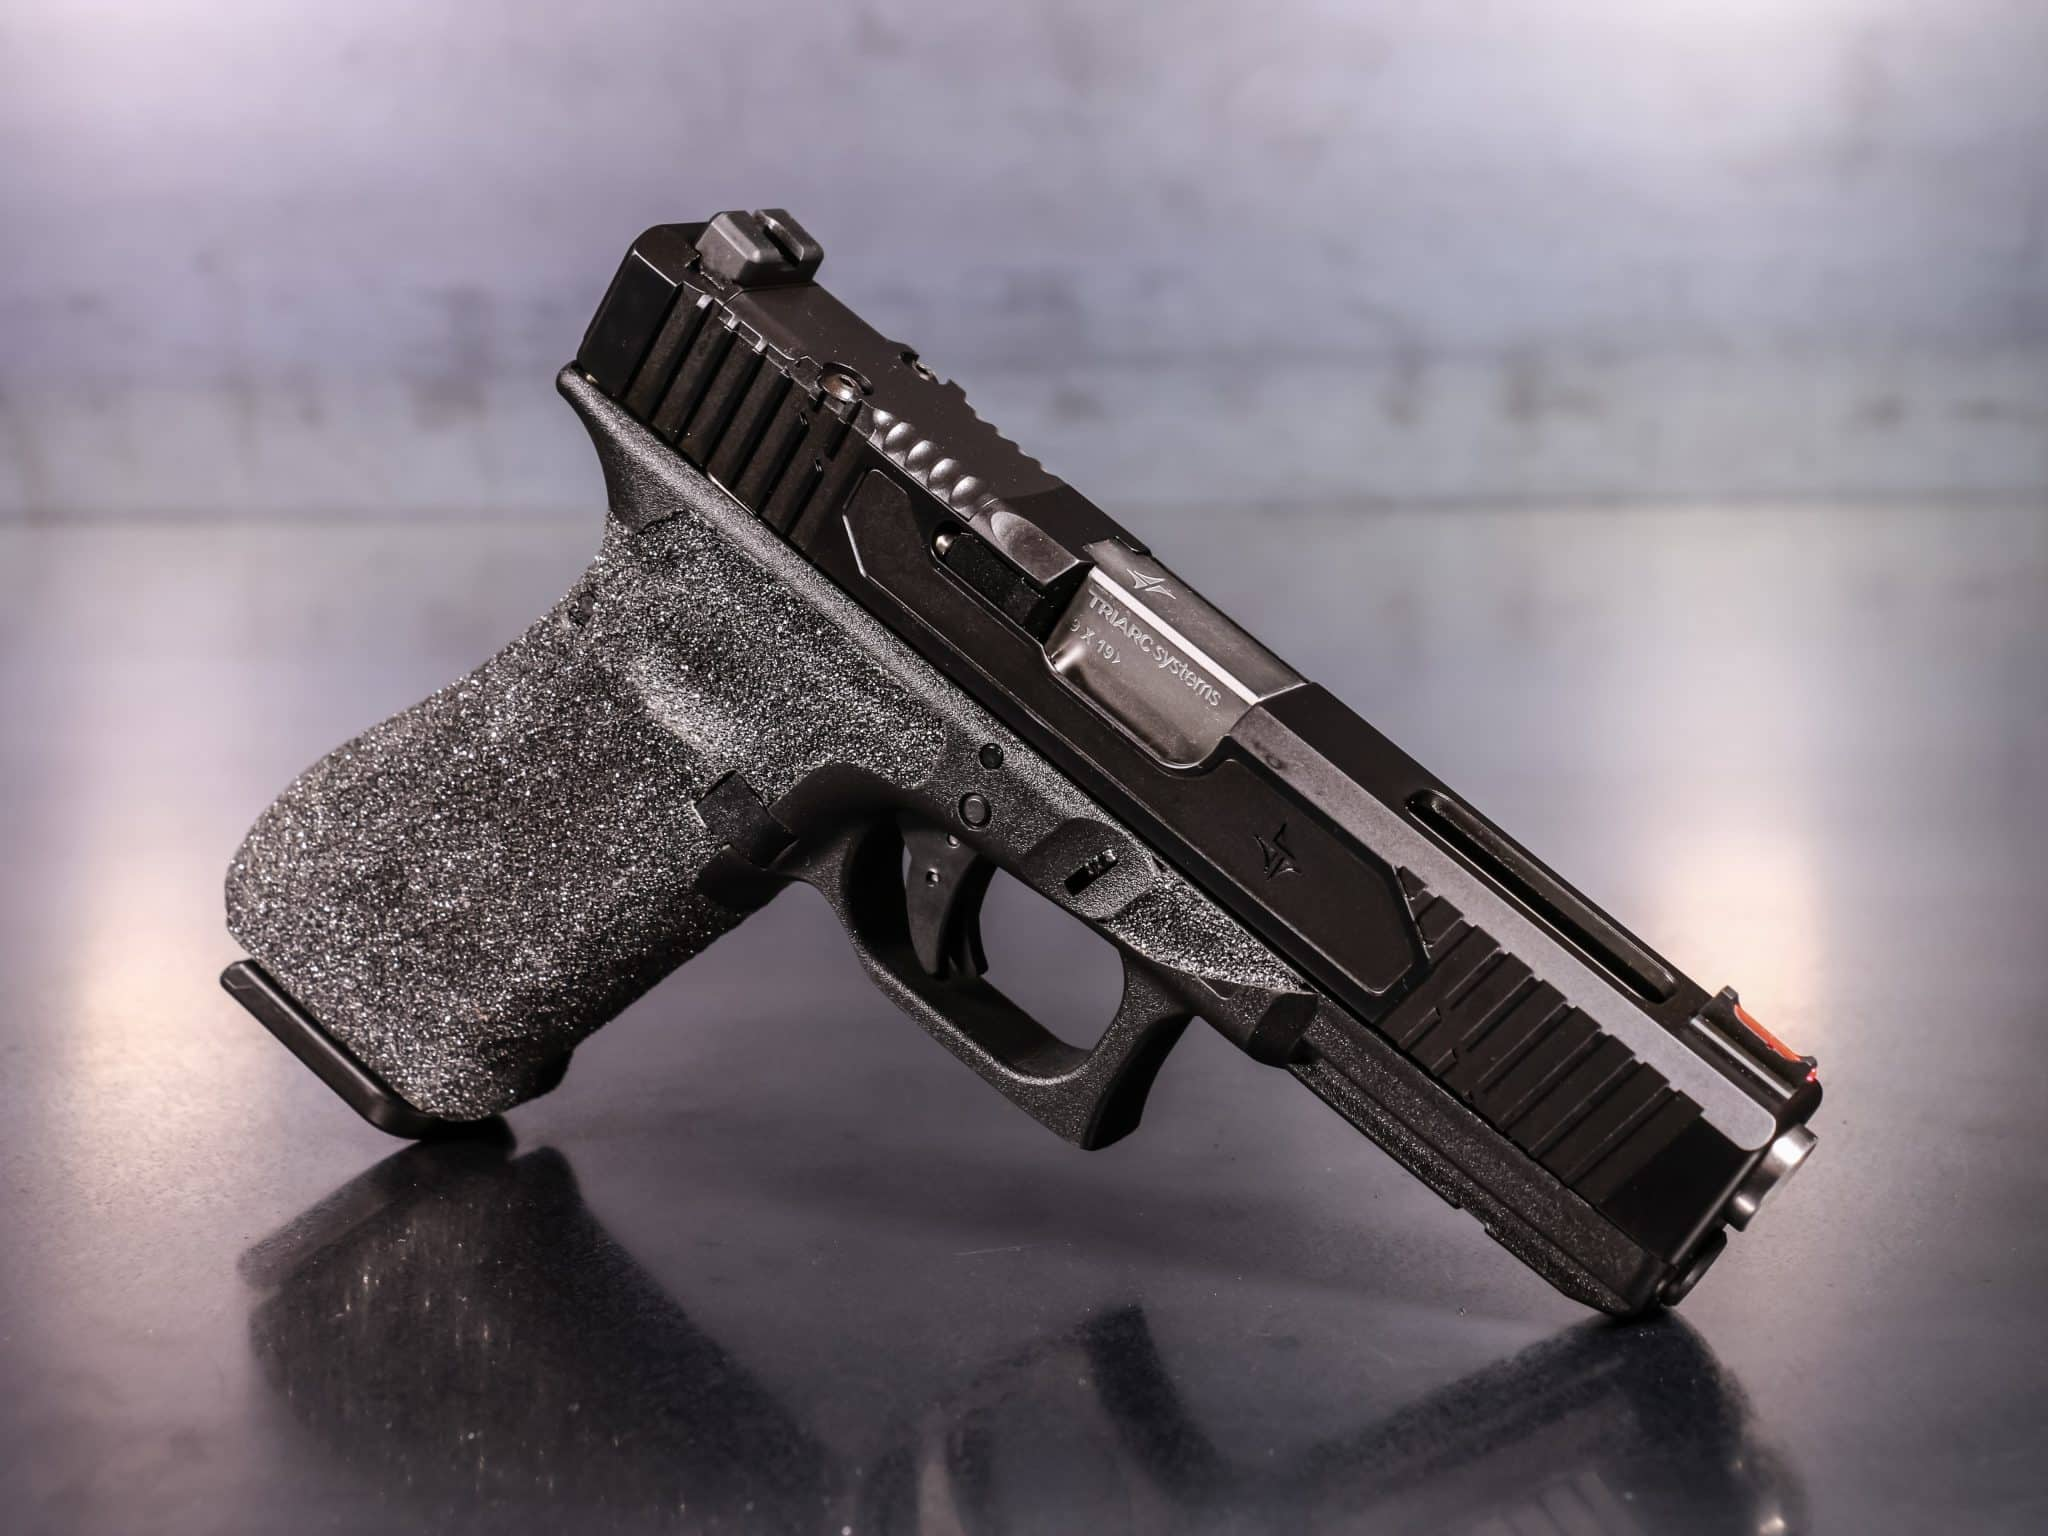 TRIARC Glock 17 Gen 3 V2 RMR Cut - Black Nitride Executive